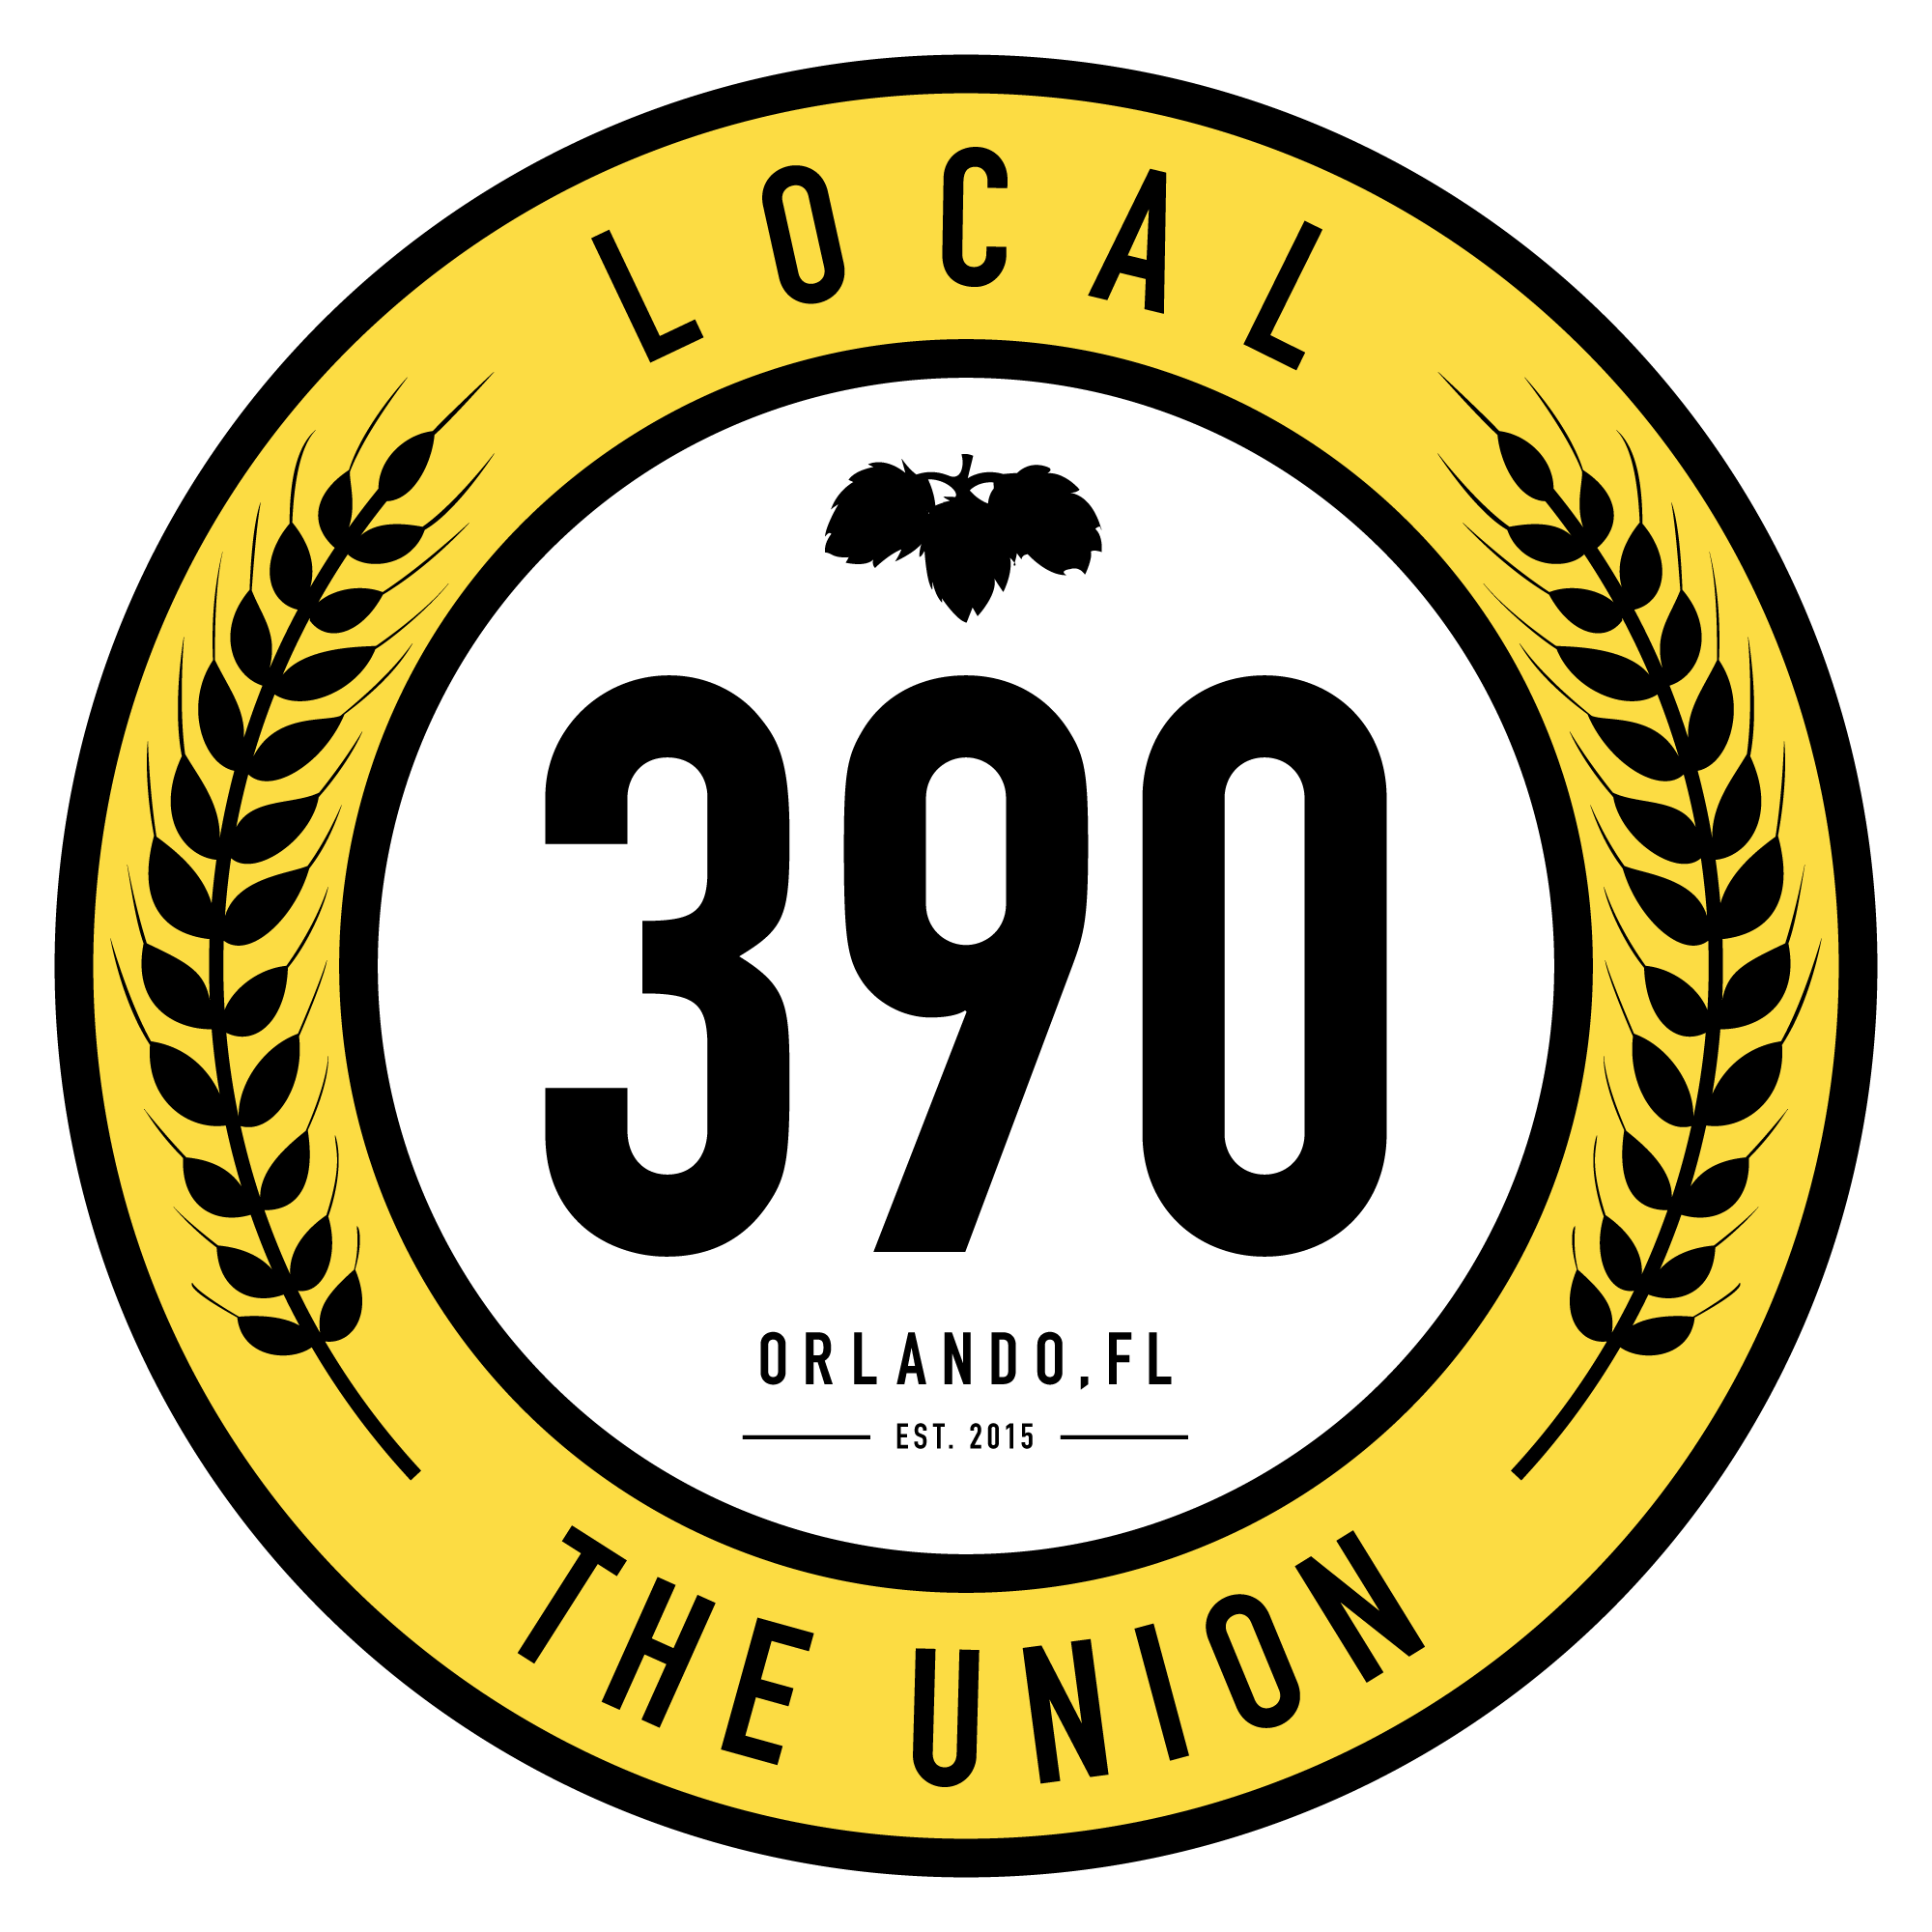 The Local 390